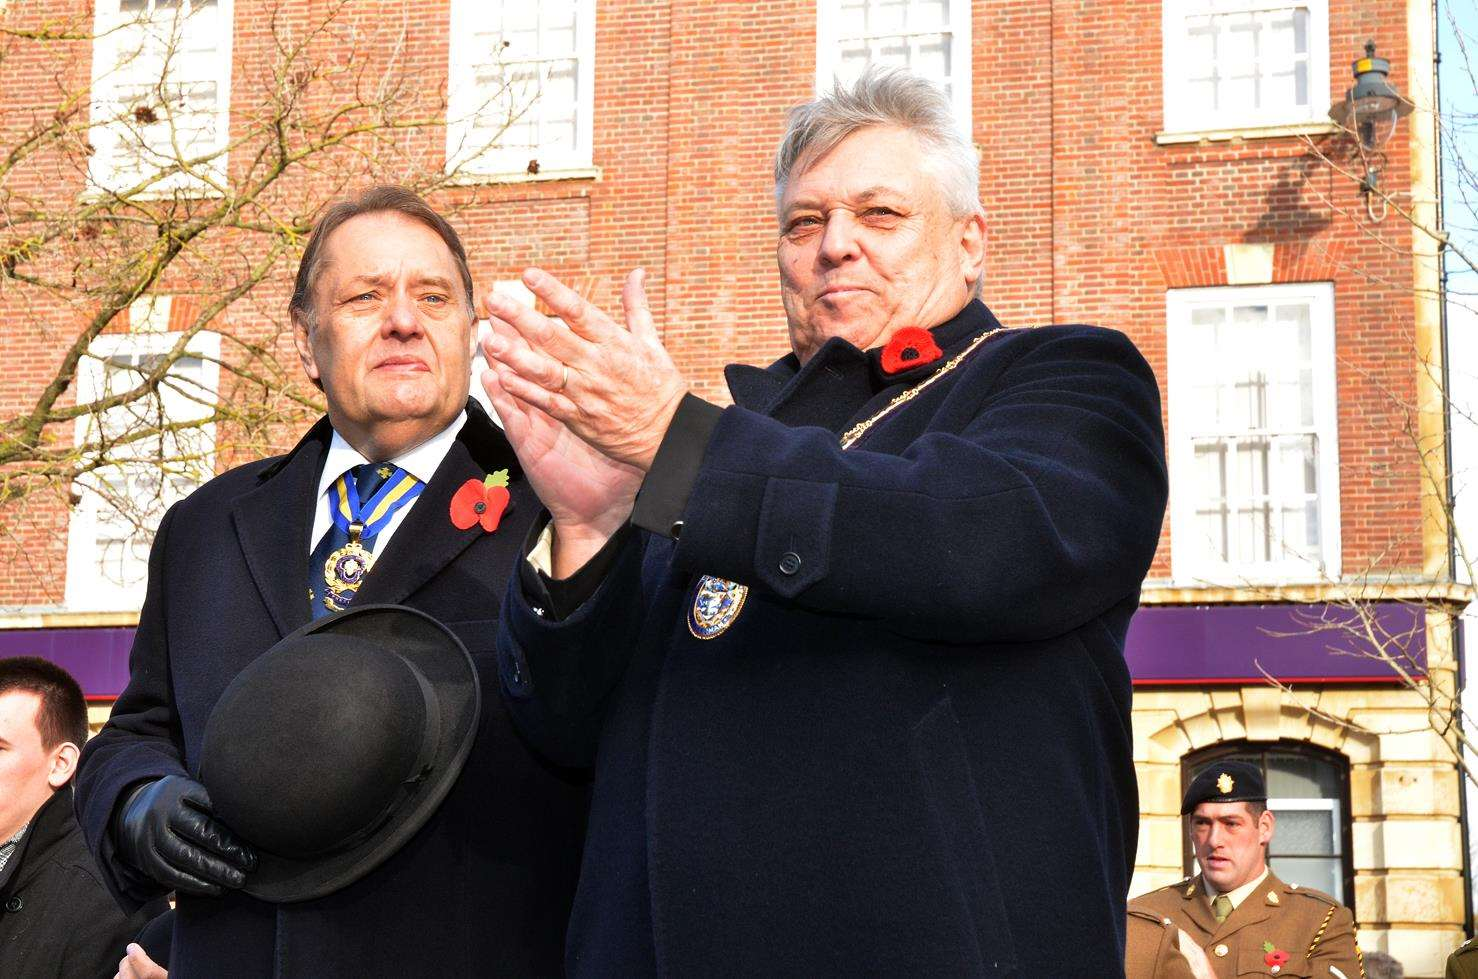 Coun Rodney Grocock (right), chairman of South Holland District Council, with Sir John Hayes, MP for South Holland and the Deepings, at Spalding's Remembrance Day parade. Photo by Tim Wilson. 11118-22